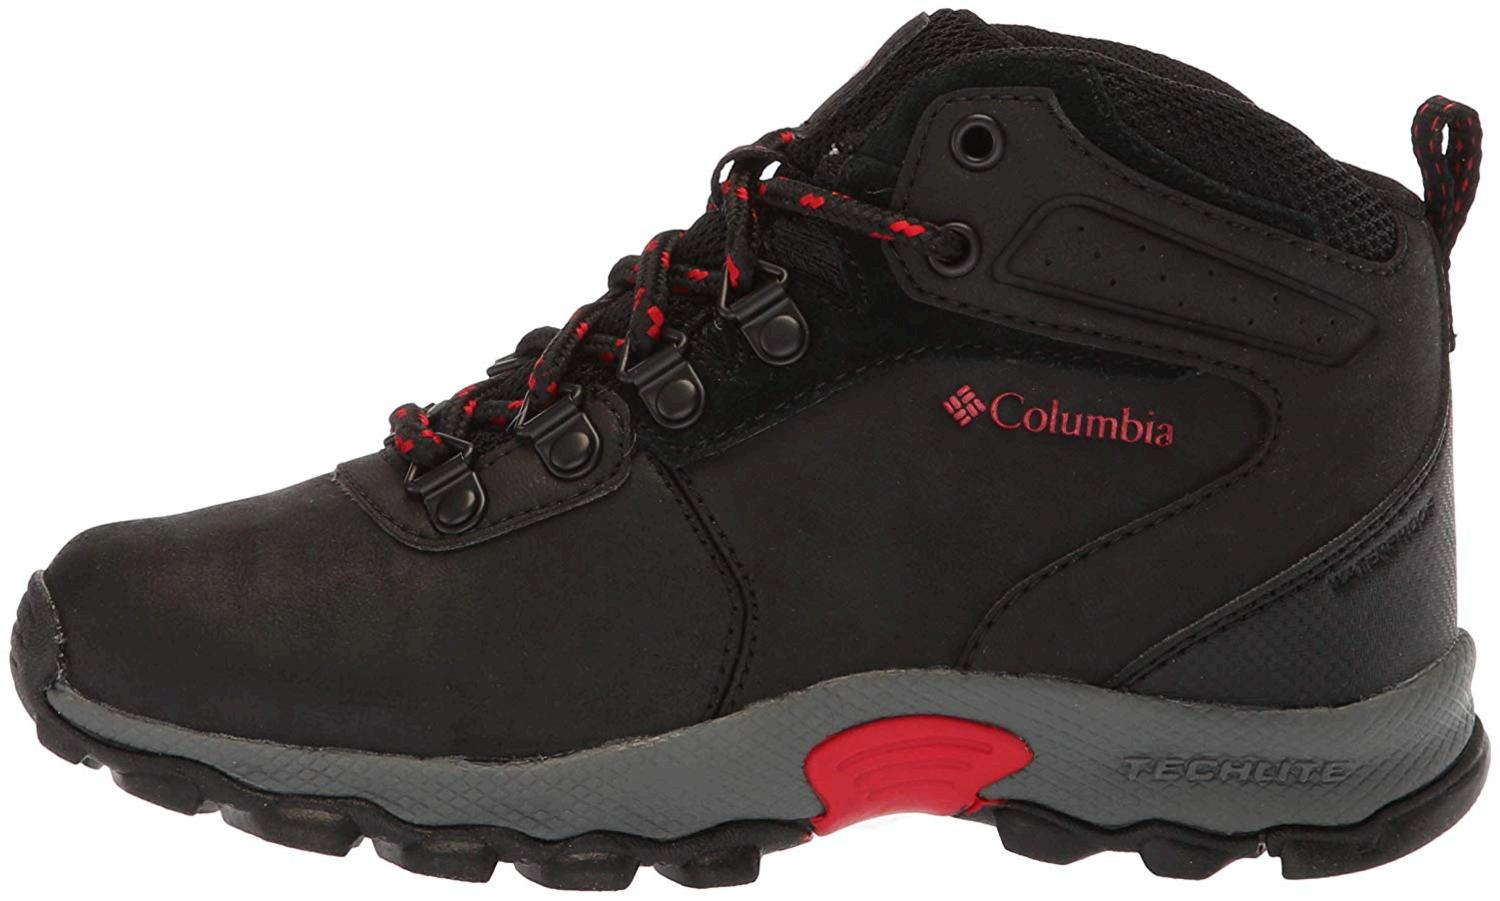 73ca98c381b05 Details about Columbia Kids' Childrens Newton Ridge Hiking Boot, Black,  Size 4.0 hSlE